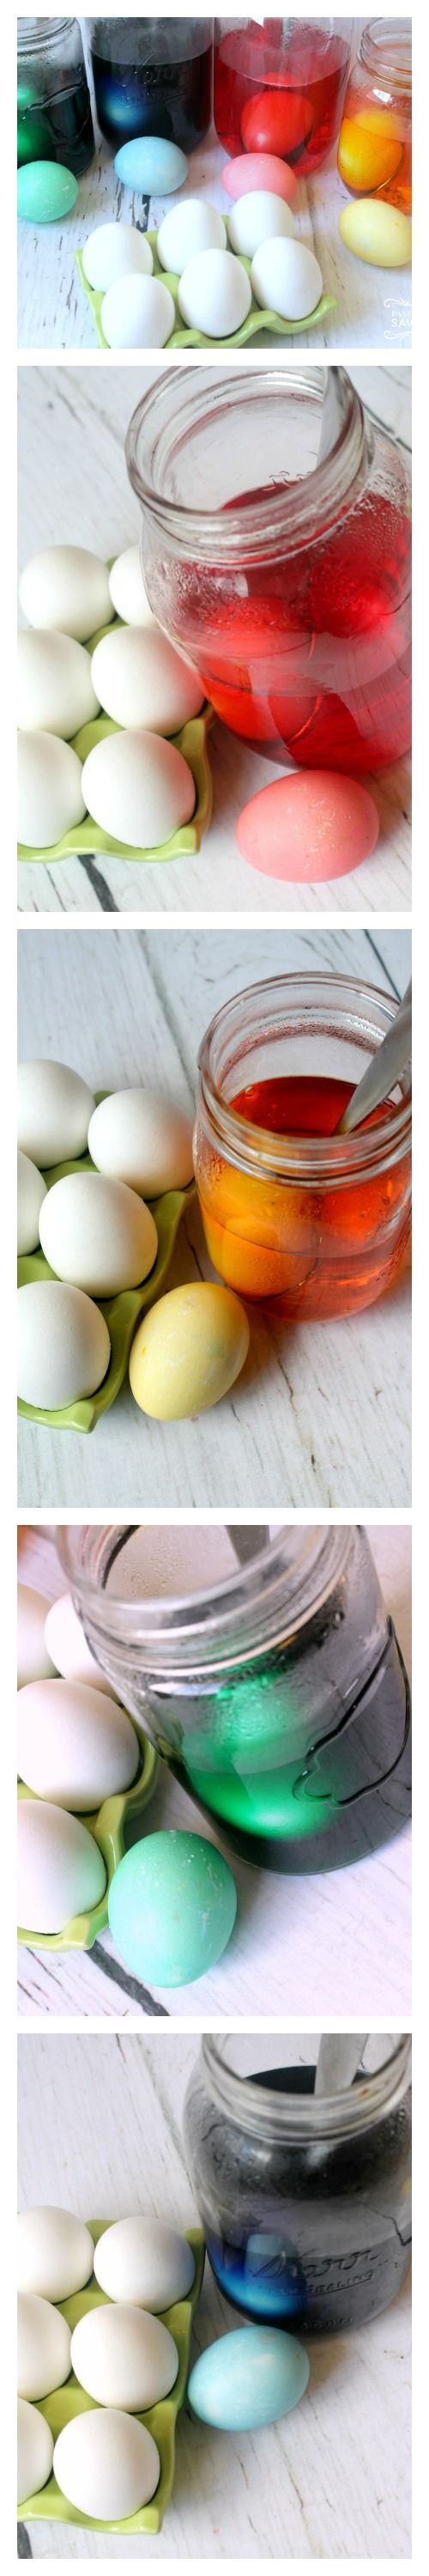 It's so easy to make your own Homemade Easter Egg Dye, it only requires 3 simple ingredients that are very common so you most likely already have everything you need! There's no reason to buy a special dye kit when you can easily make your own and it works perfectly!